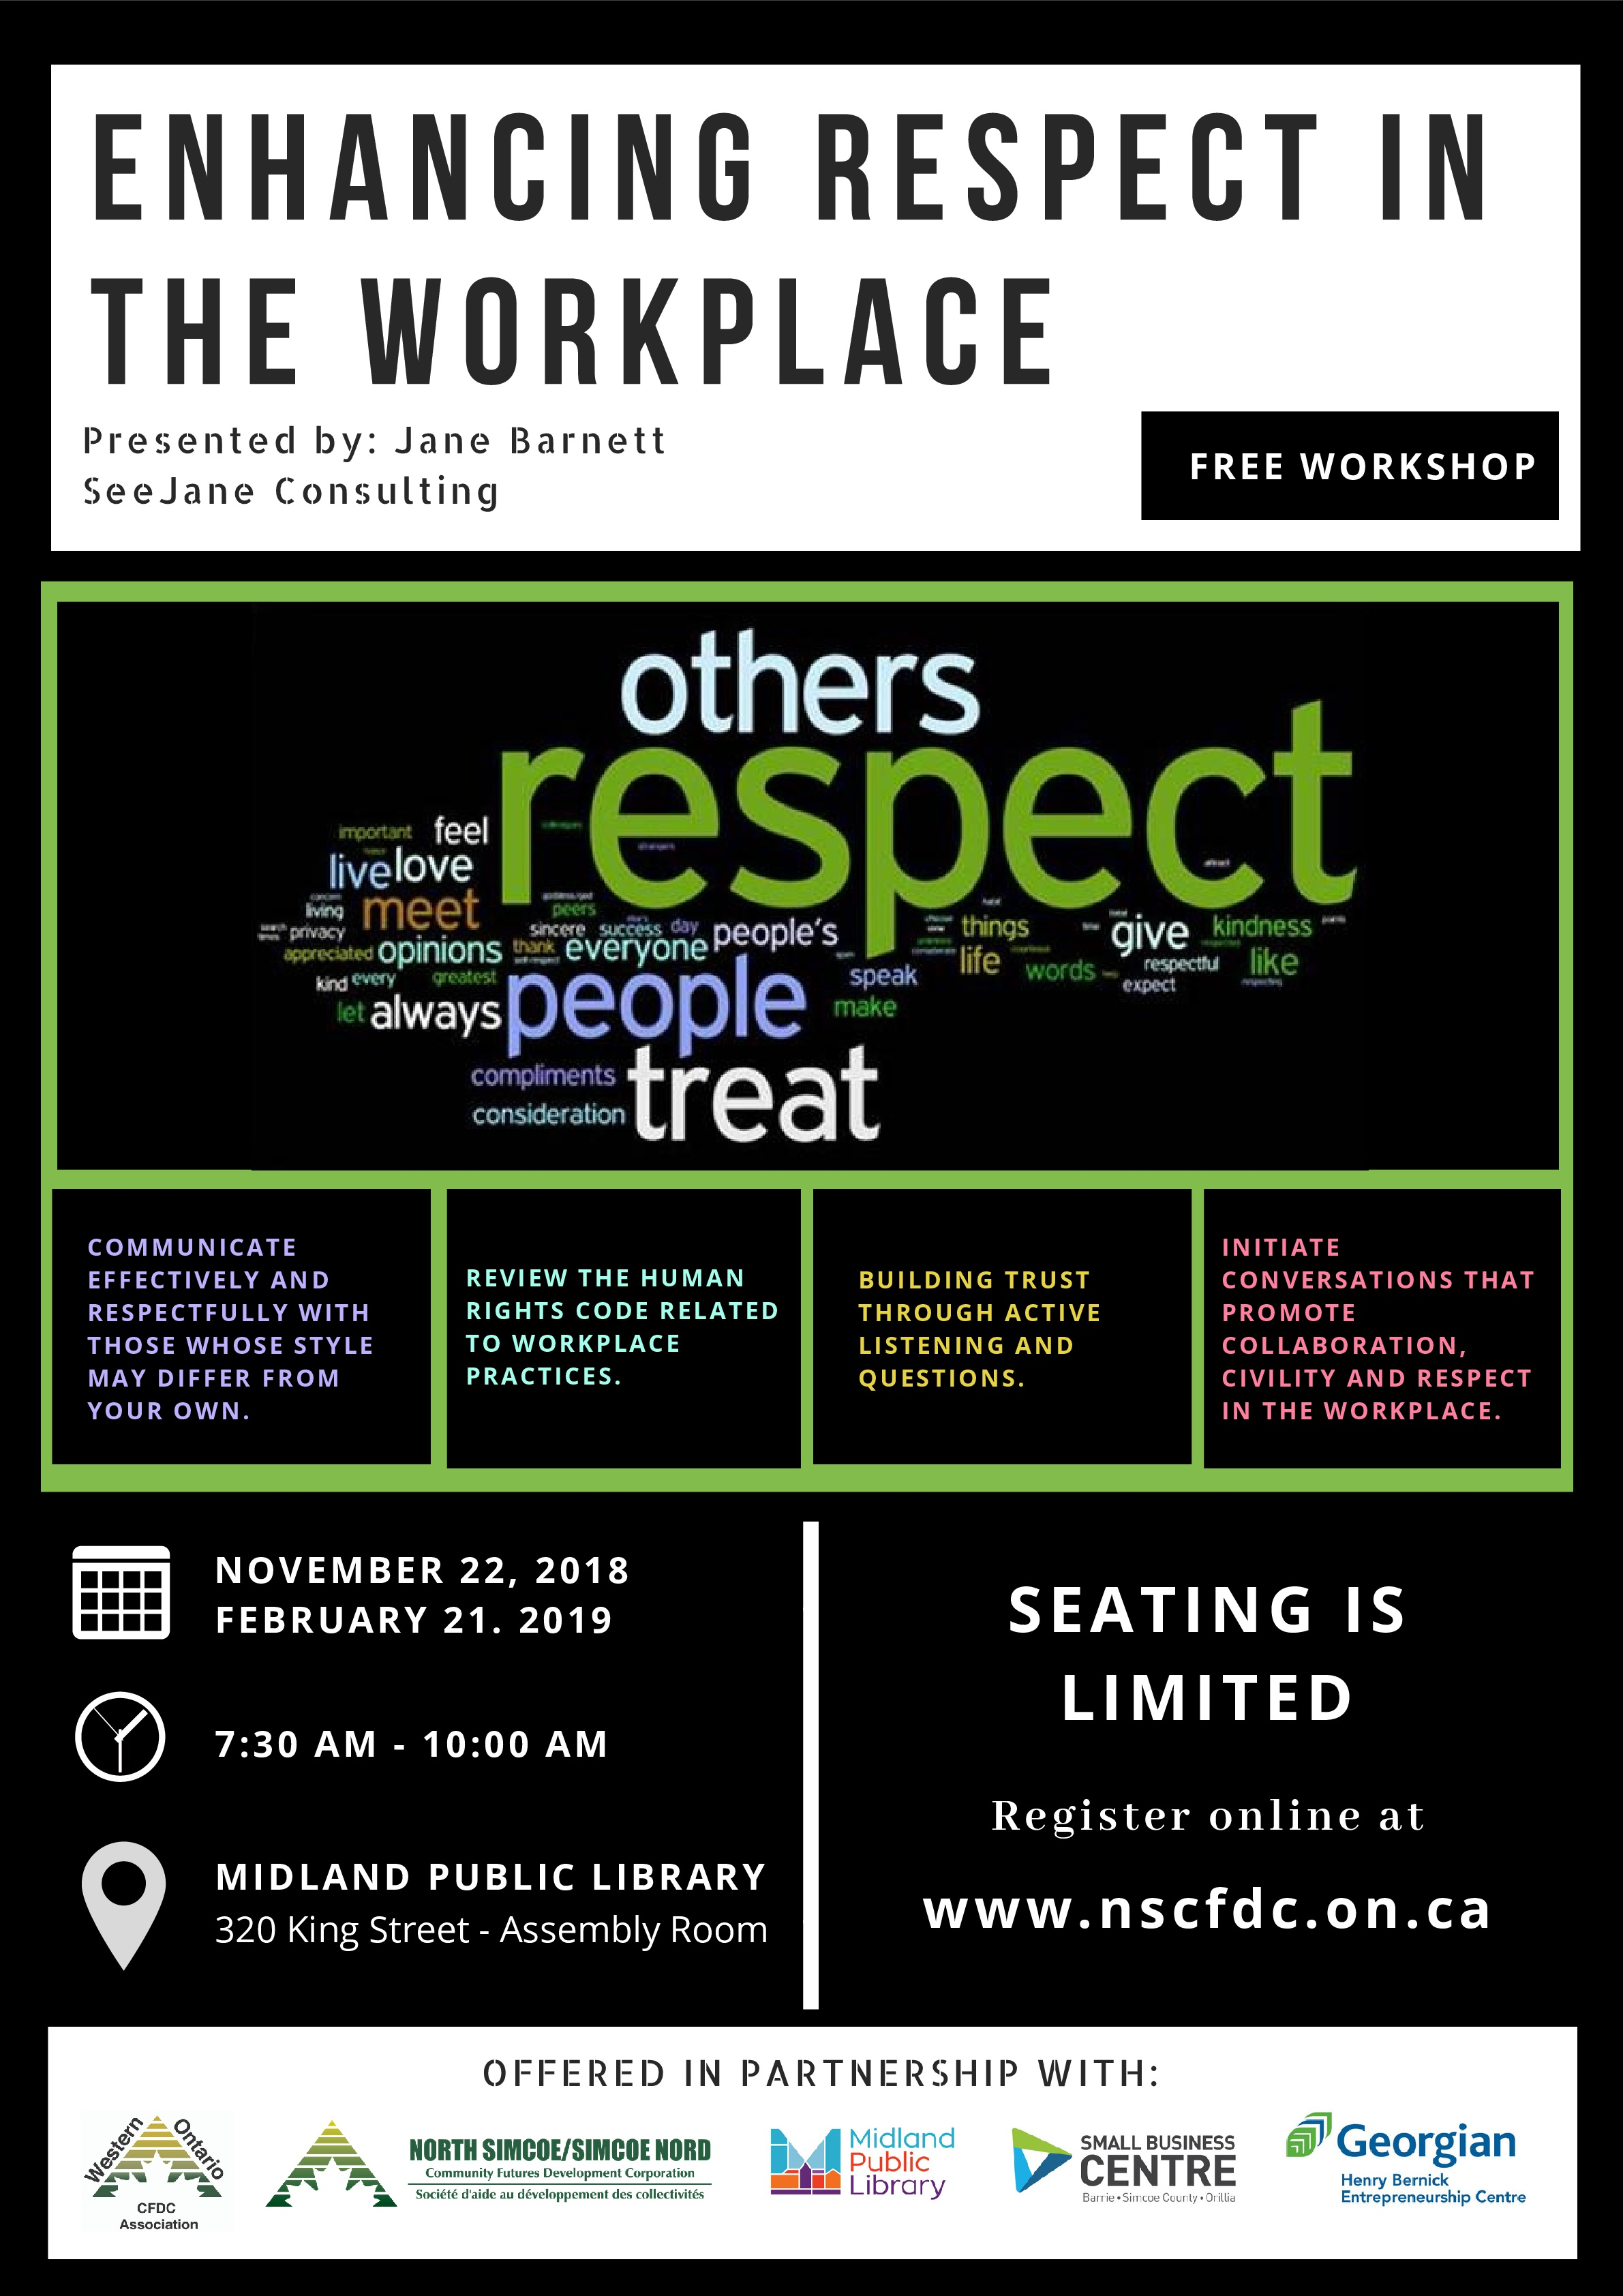 Workshop: Enhancing Respect in the Workplace